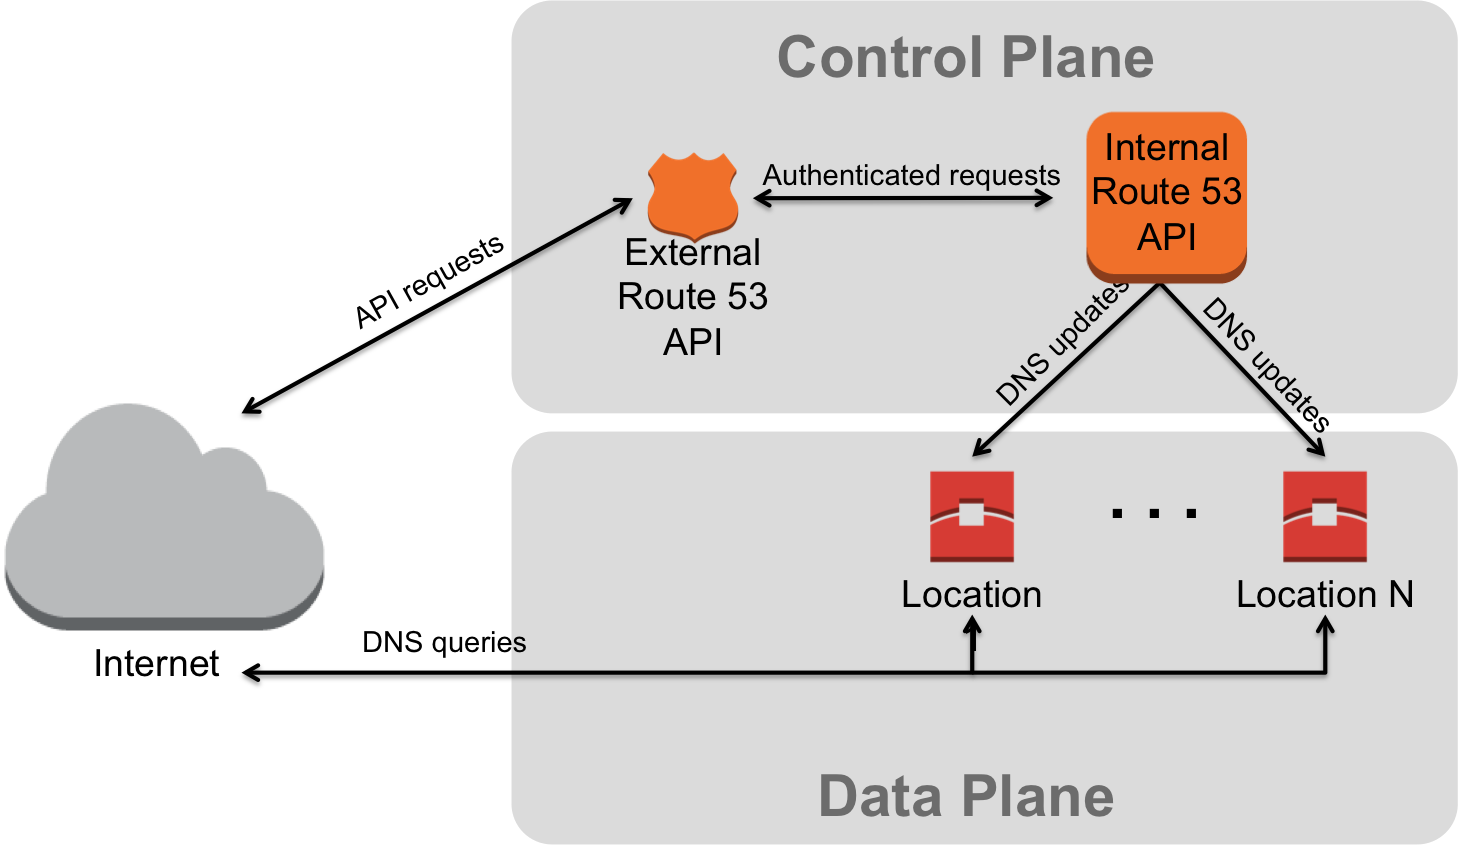 Control and Data Planes